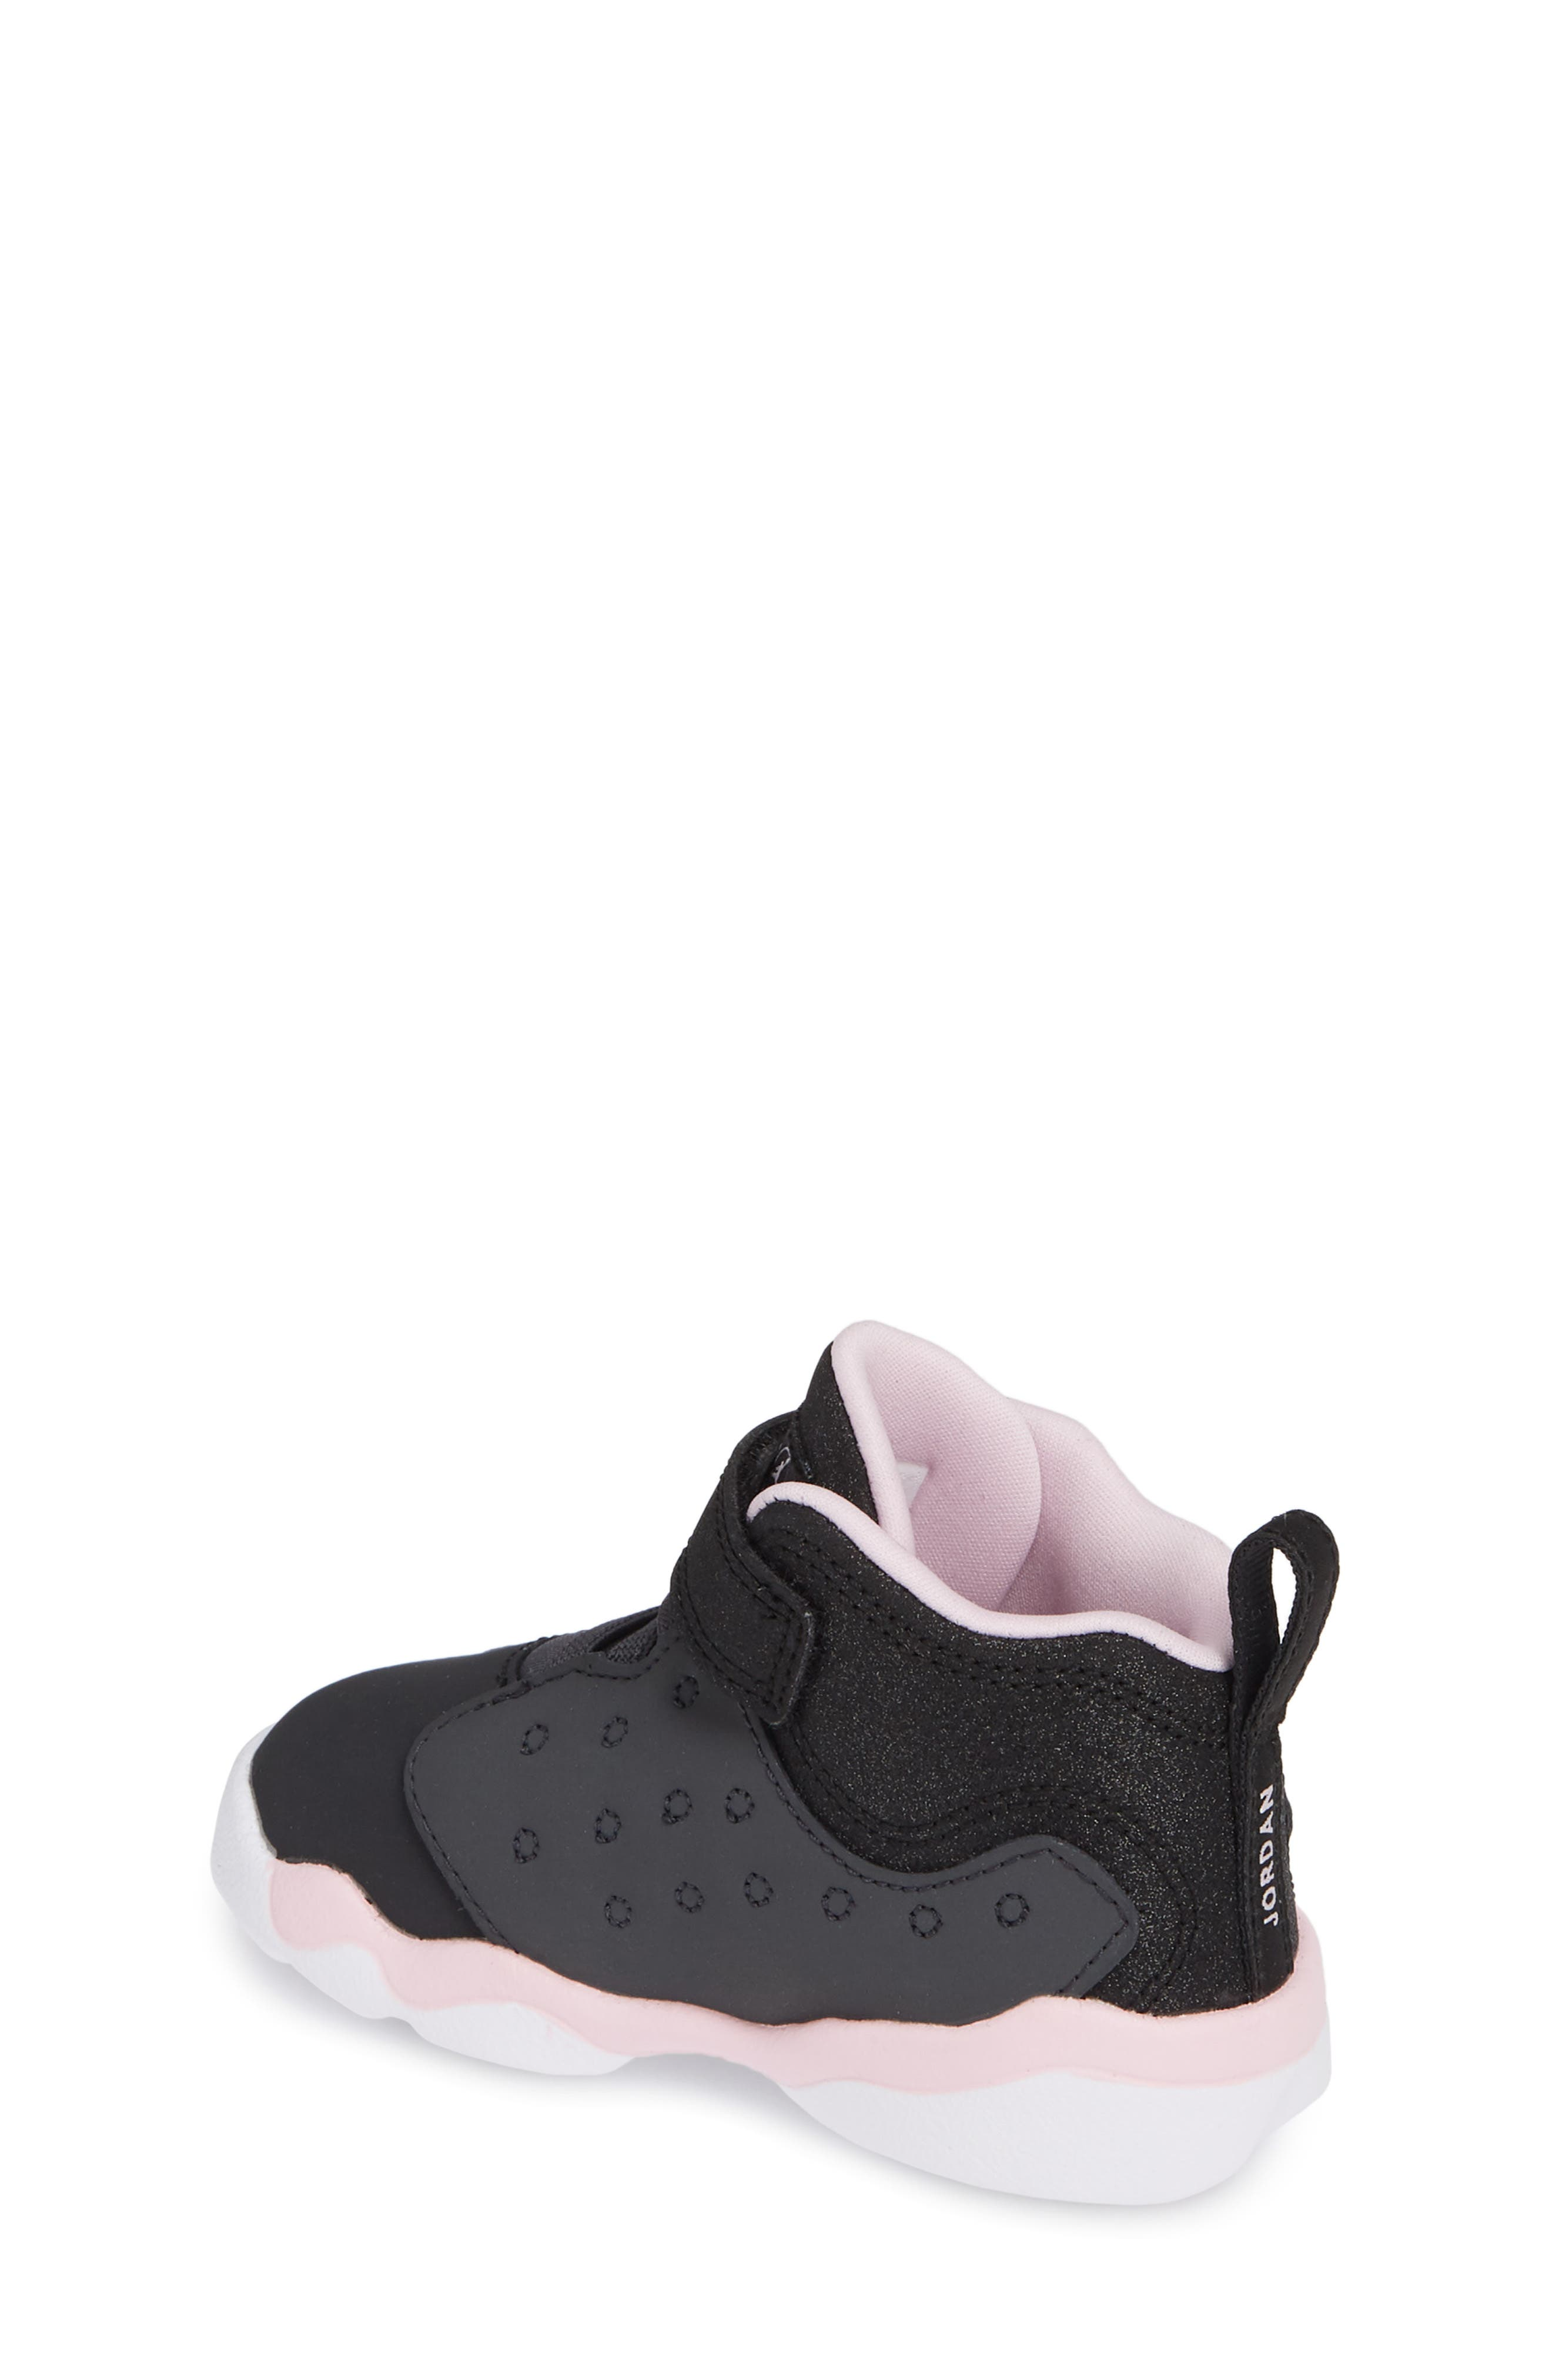 Jumpman Team II Sneaker,                             Alternate thumbnail 2, color,                             ANTHRACITE/ BLACK-PINK -WHITE